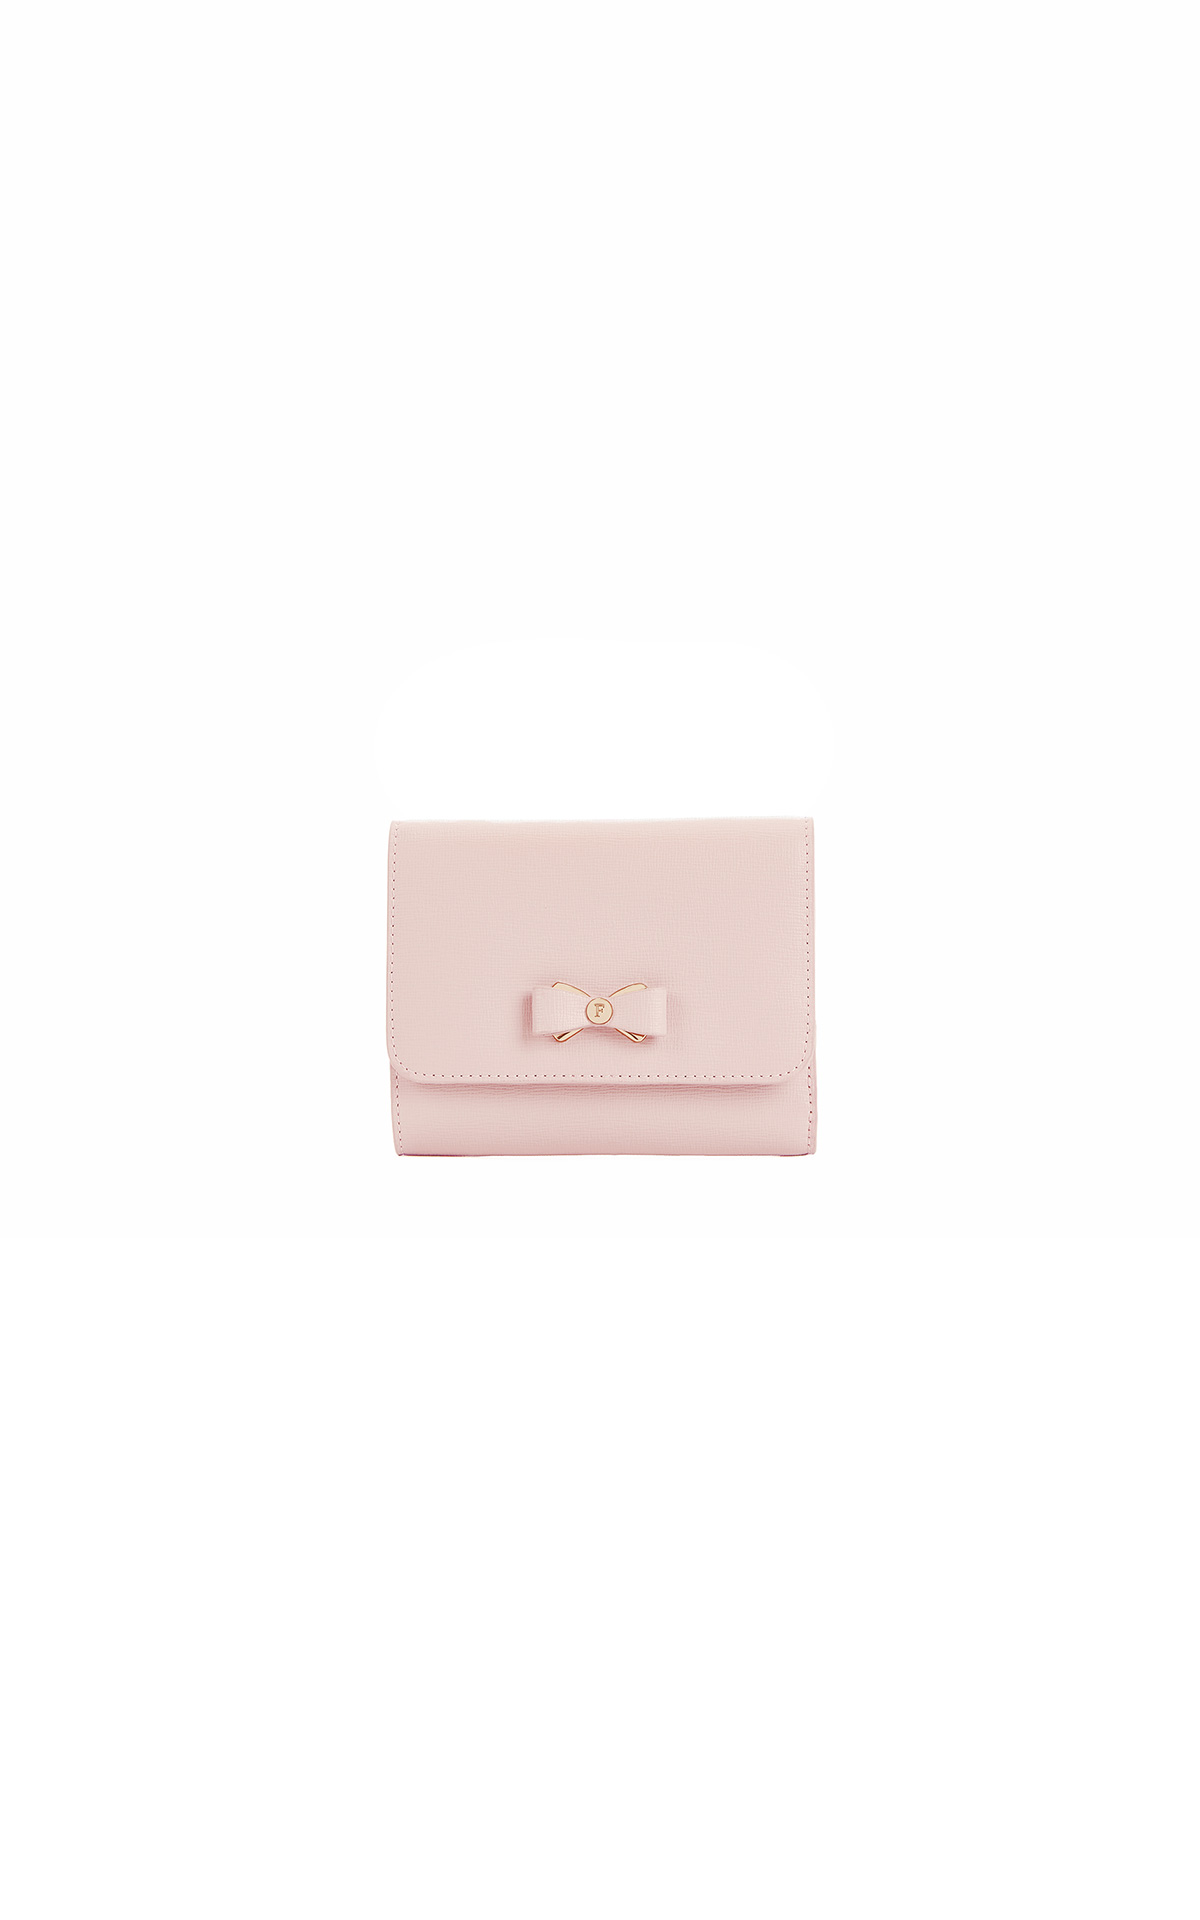 Small light pink wallet Furla